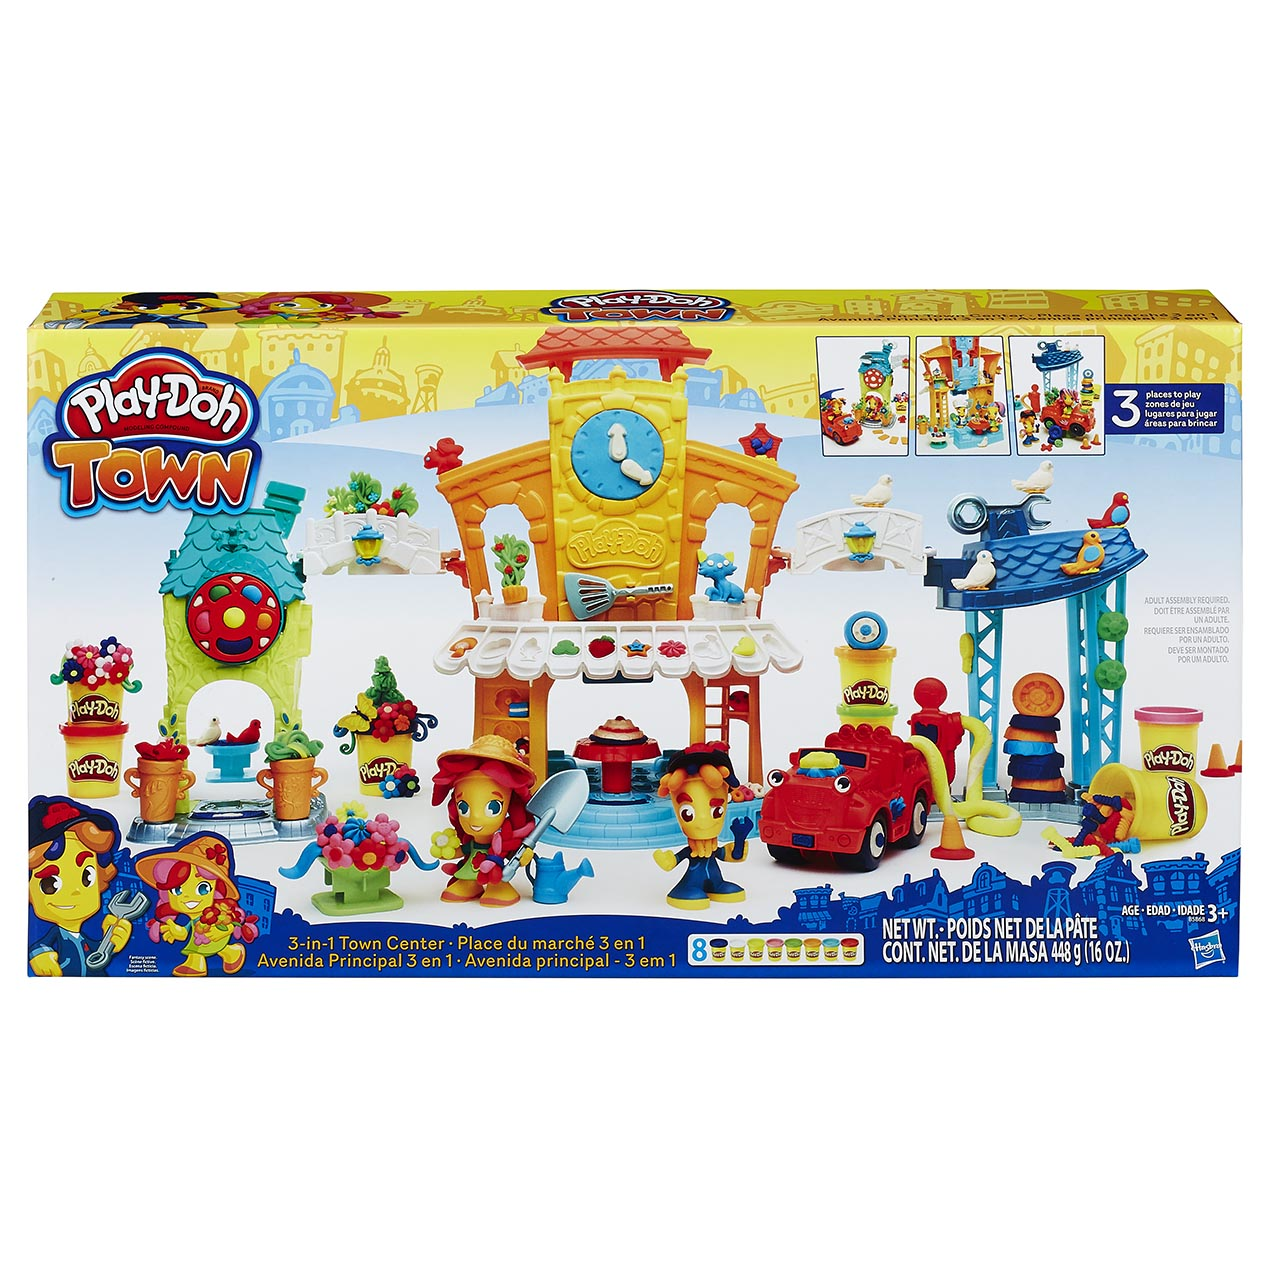 Hasbro Play Doh TOWN 3-IN-1 TOWN CENTER